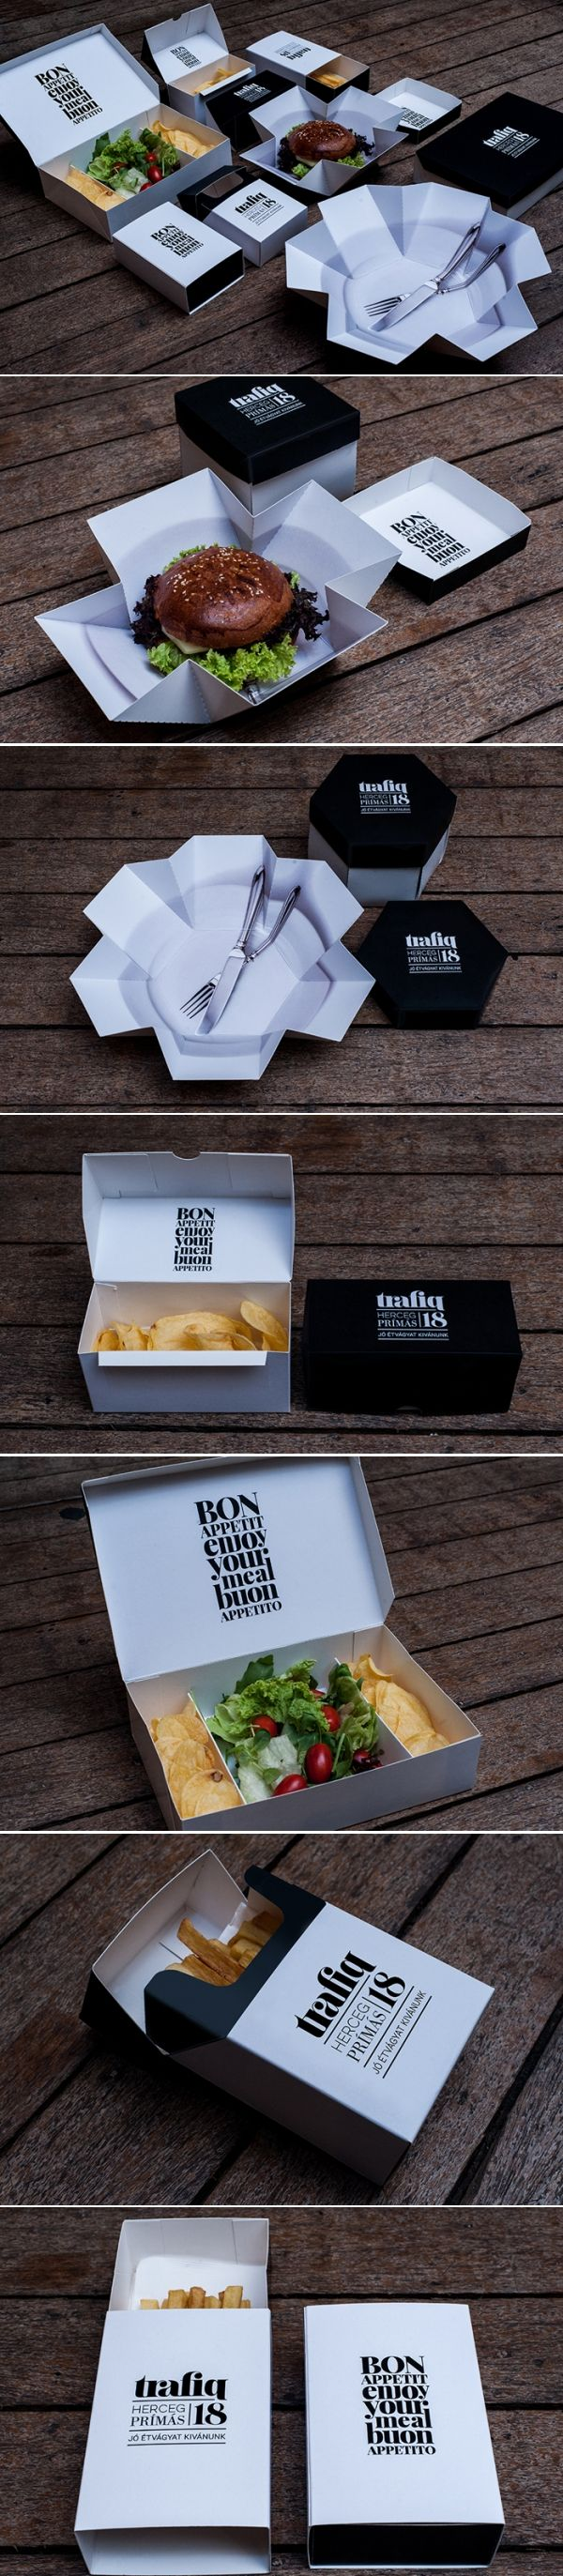 Trafiq Packaging by Kiss Miklos. #packaging #package #design #pikock www.pikock.com #inspiration #product